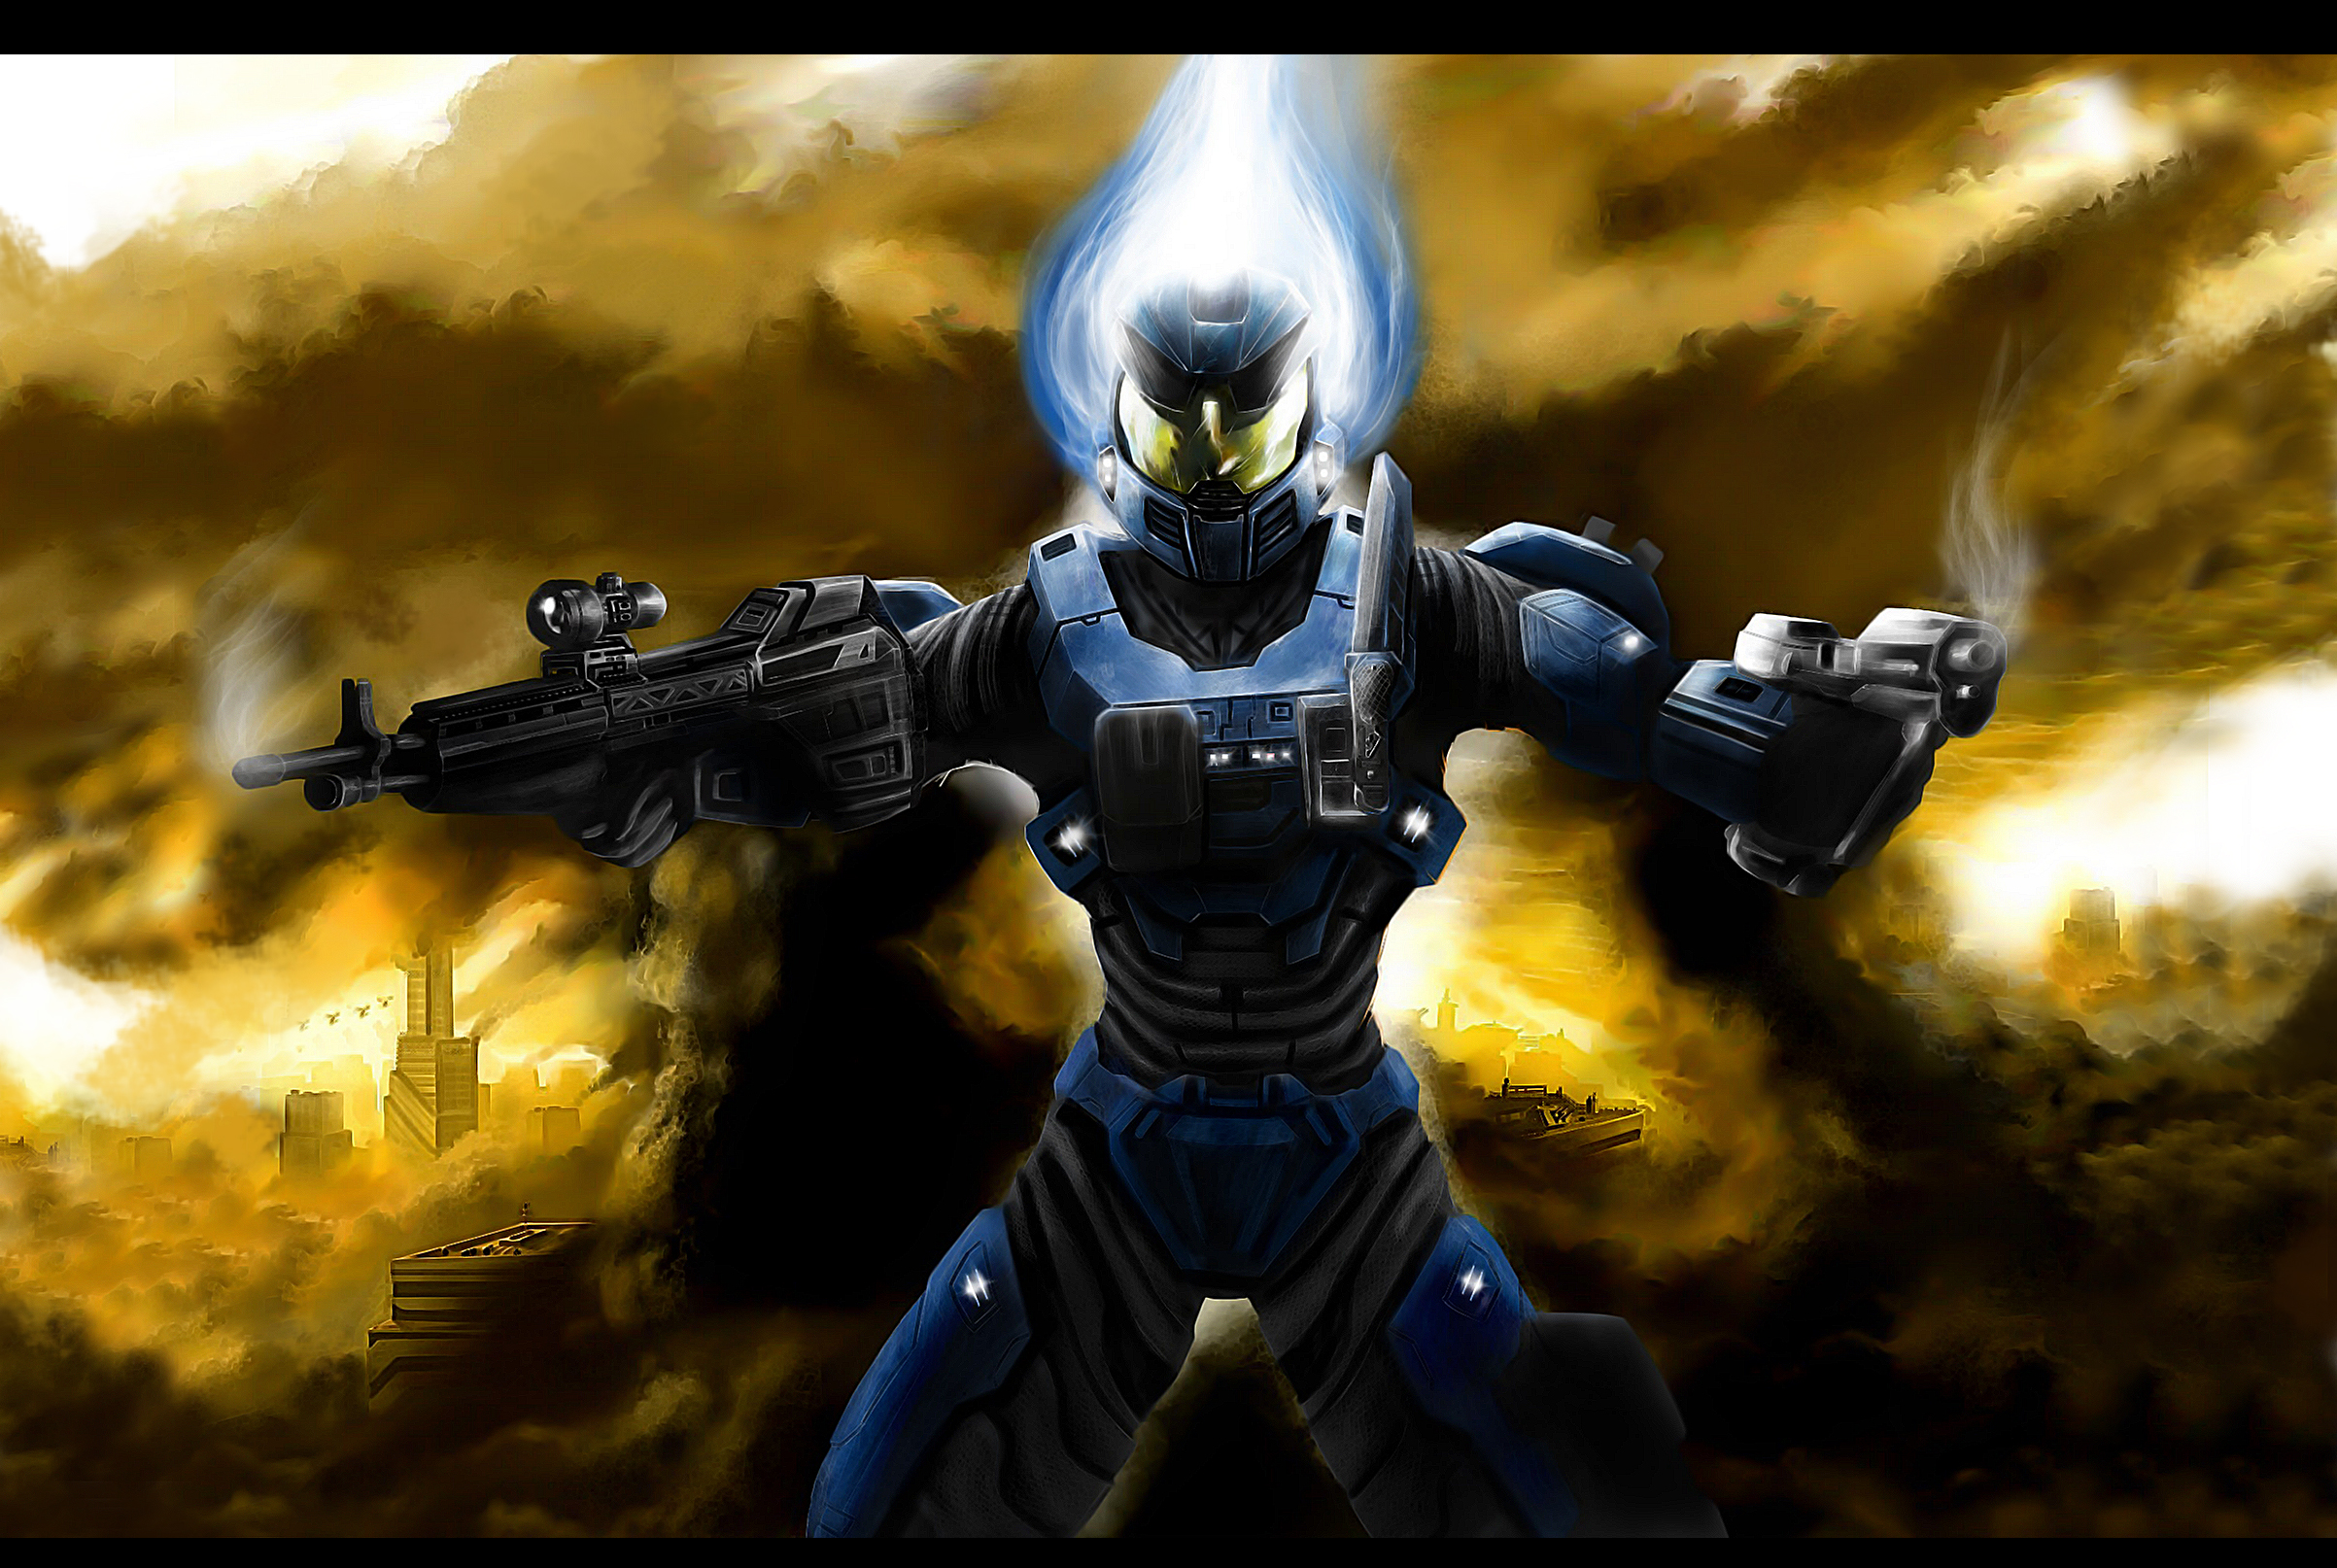 788 best Halo images on Pinterest | Videogames, Red vs blue and ...